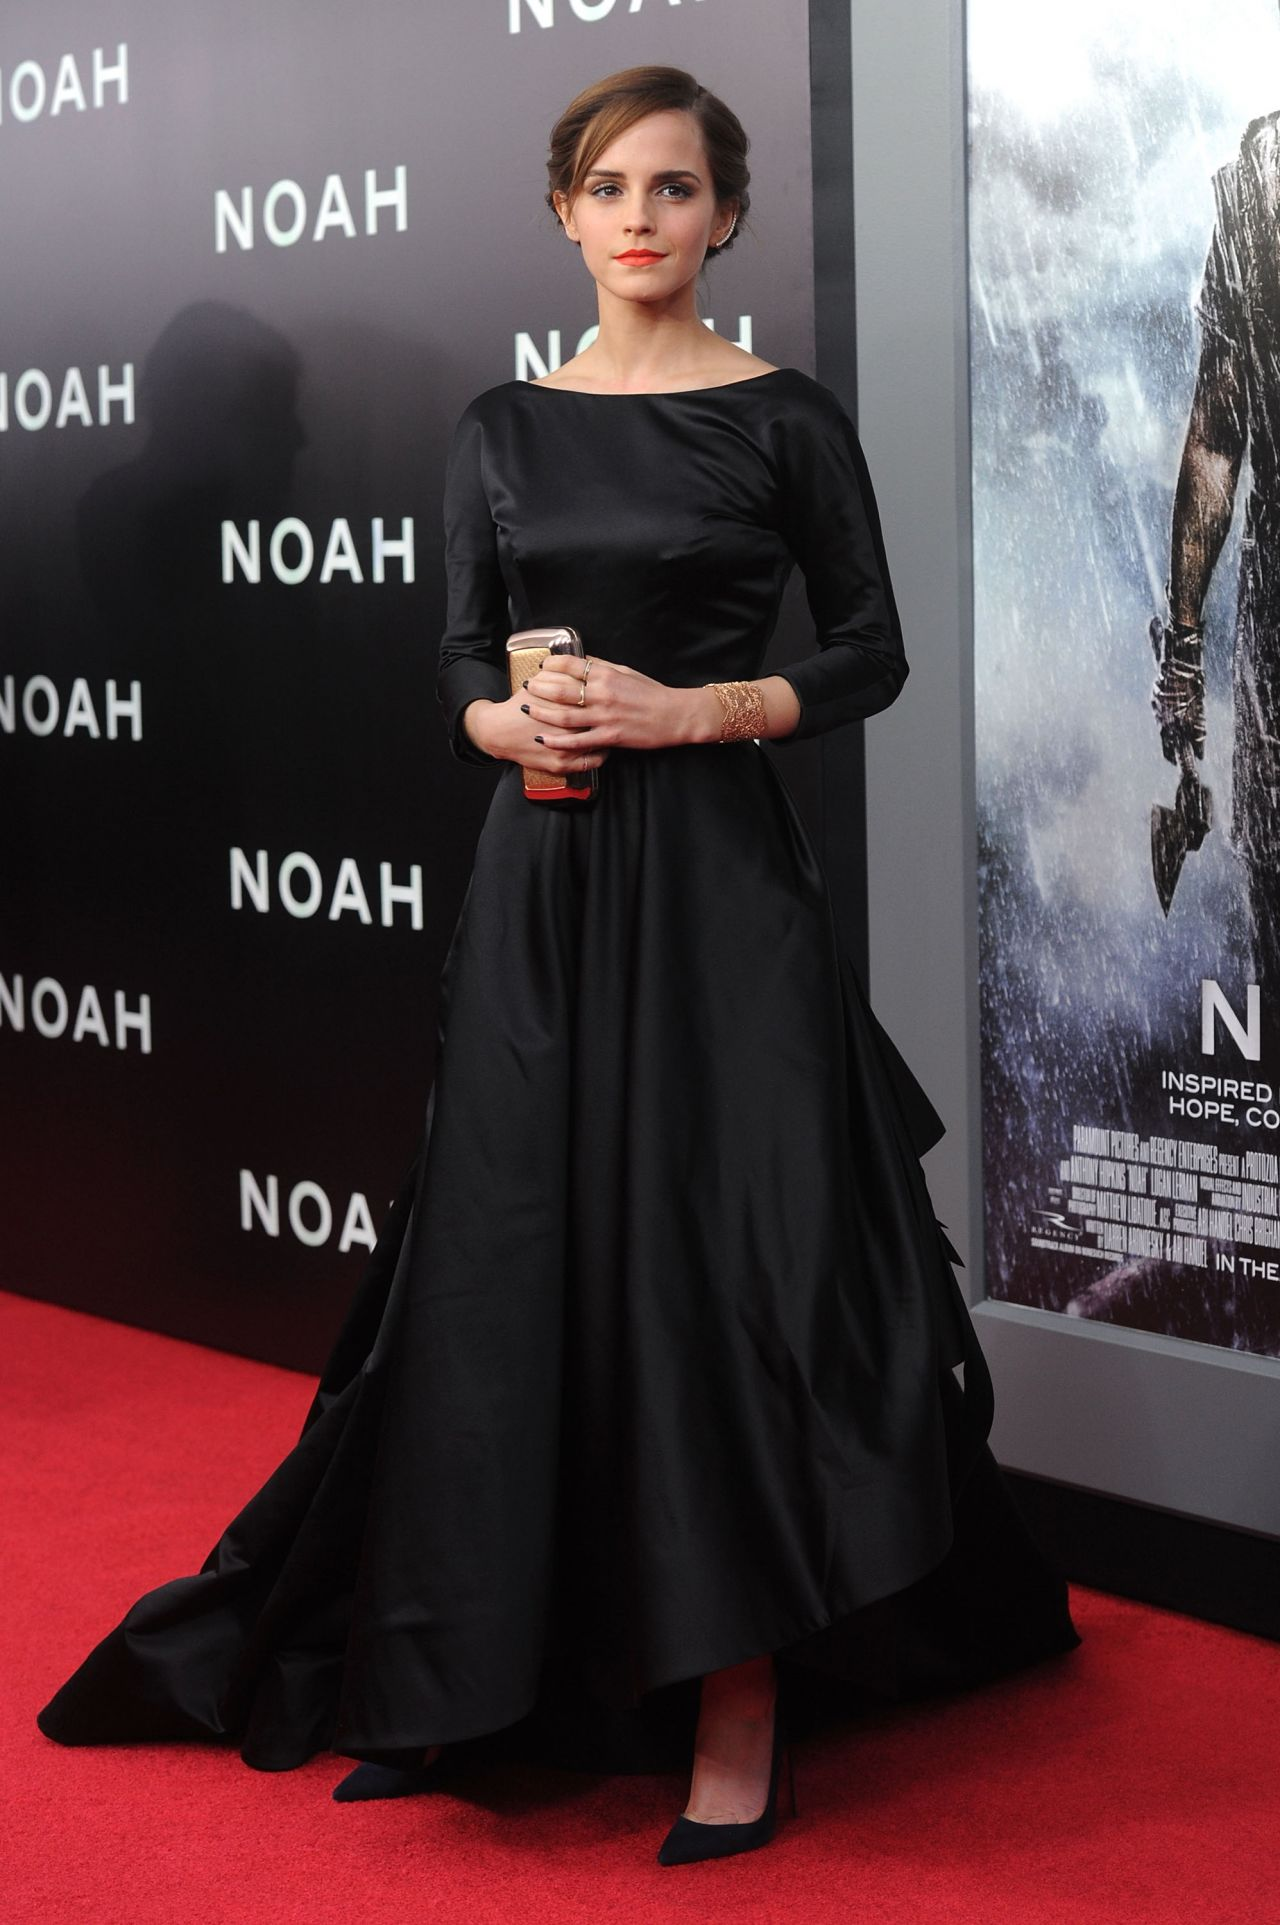 Emma Watson On Red Carpet Noah Premiere In New York City